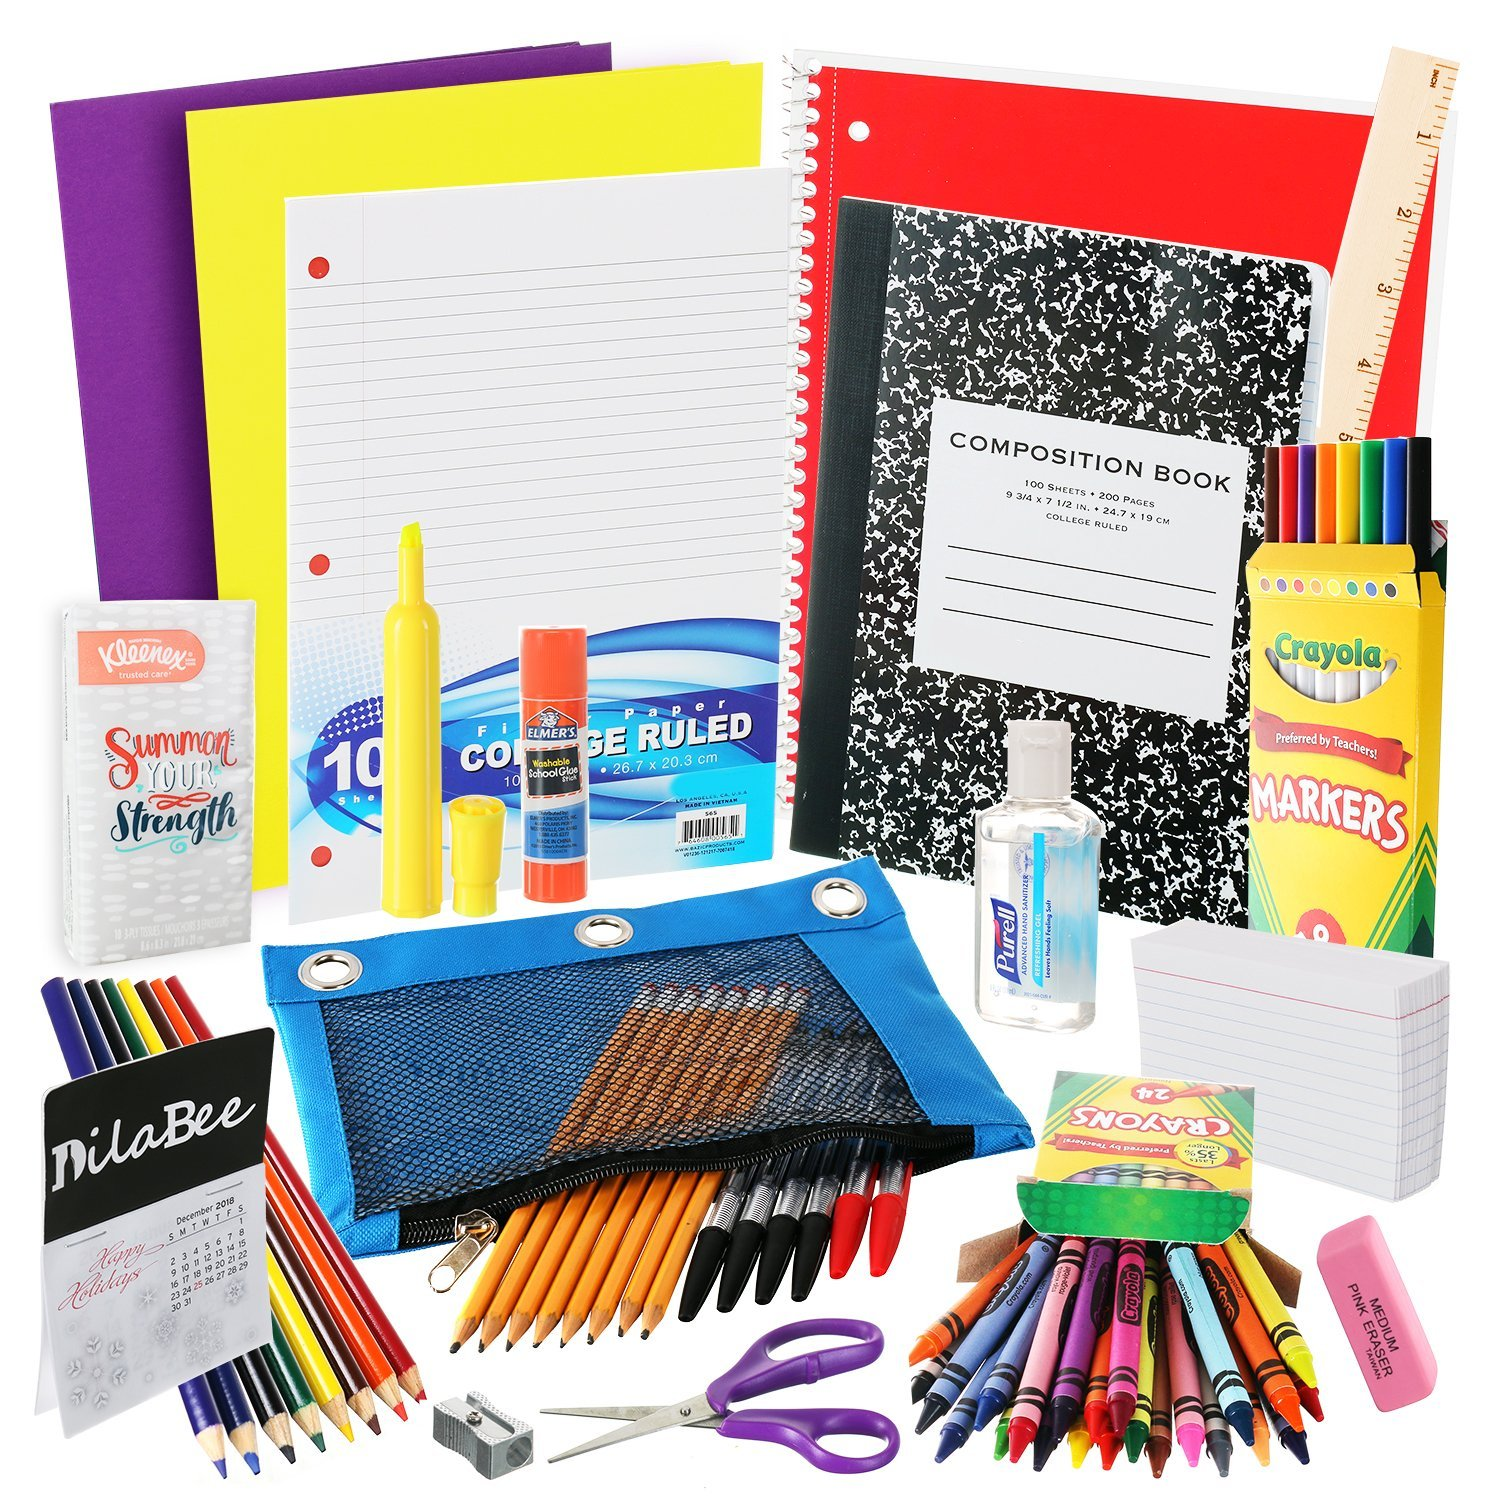 DilaBee Back to School Supplies Kit for Third to Fifth Grade Kids: Complete Classroom Supply Bundle - Set of 20 Elementary School Essentials - Crayola Art, Elmer's Glue, Pencils, Papers